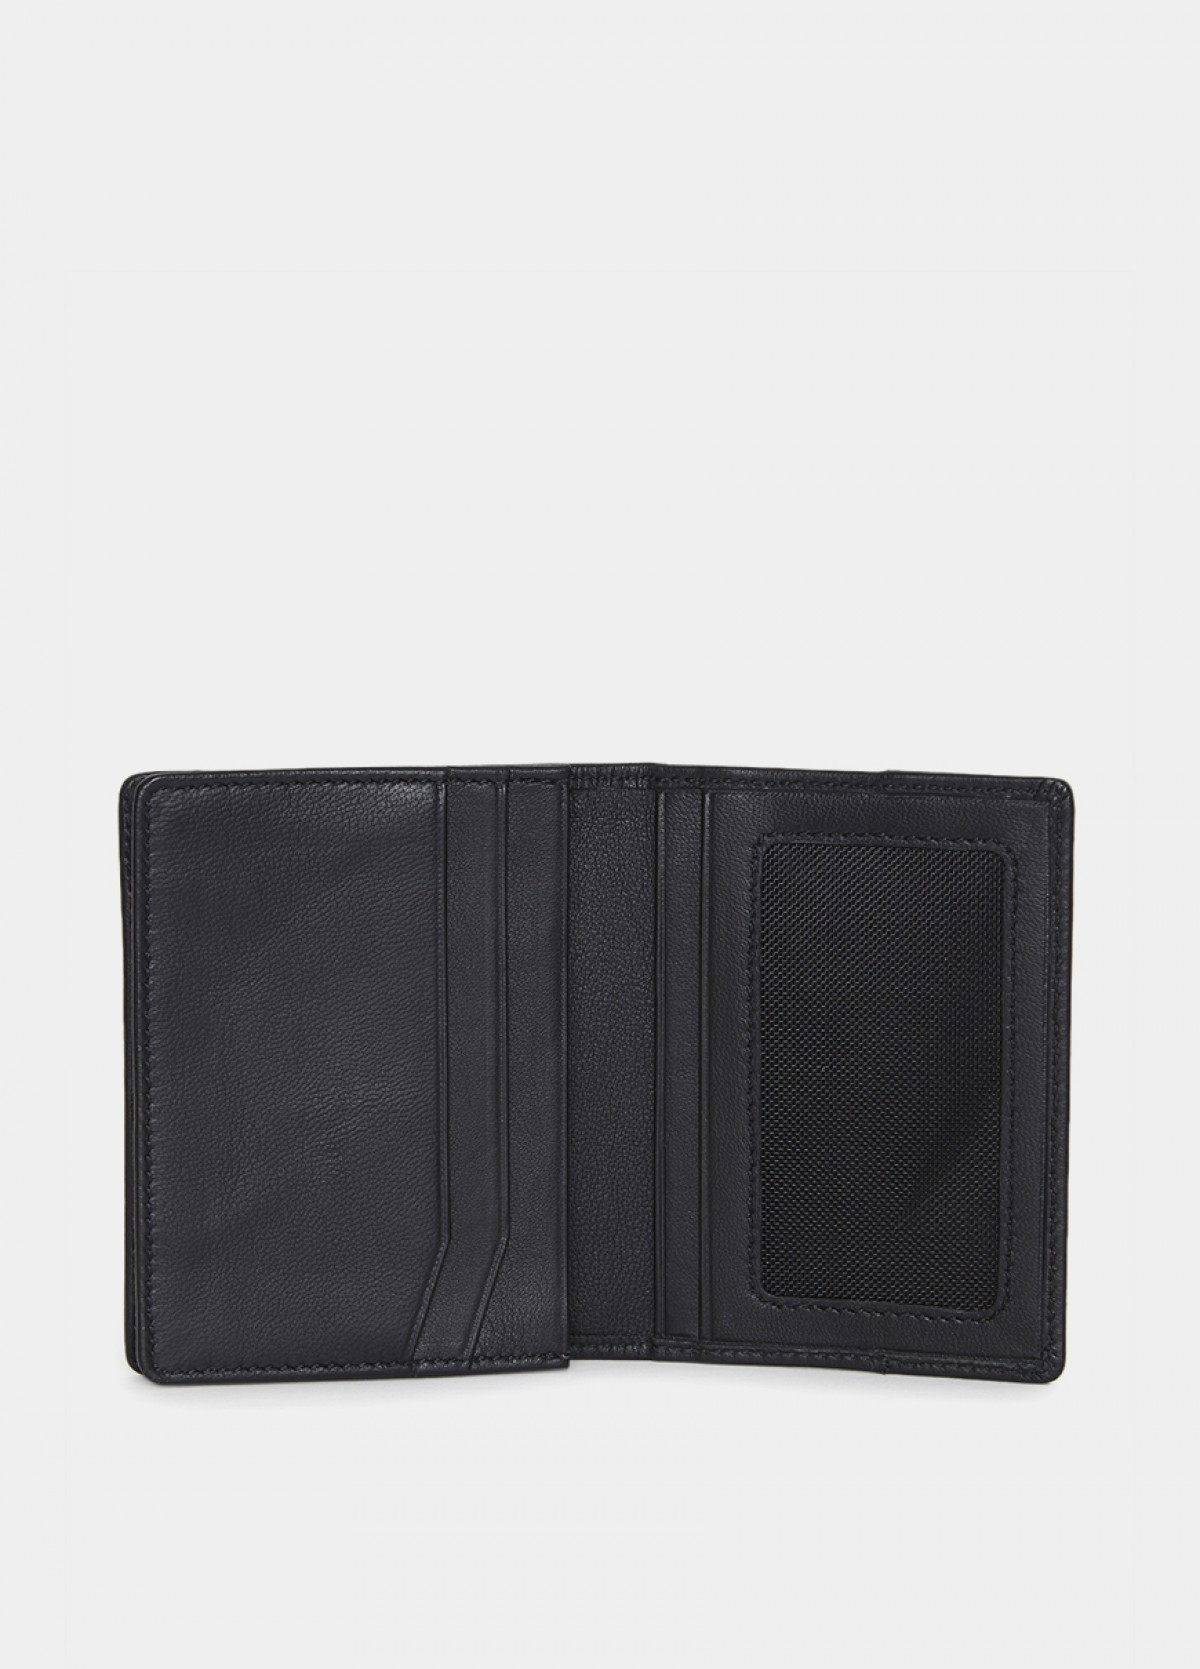 The Him & The City Olive Men'S Business Card Holder